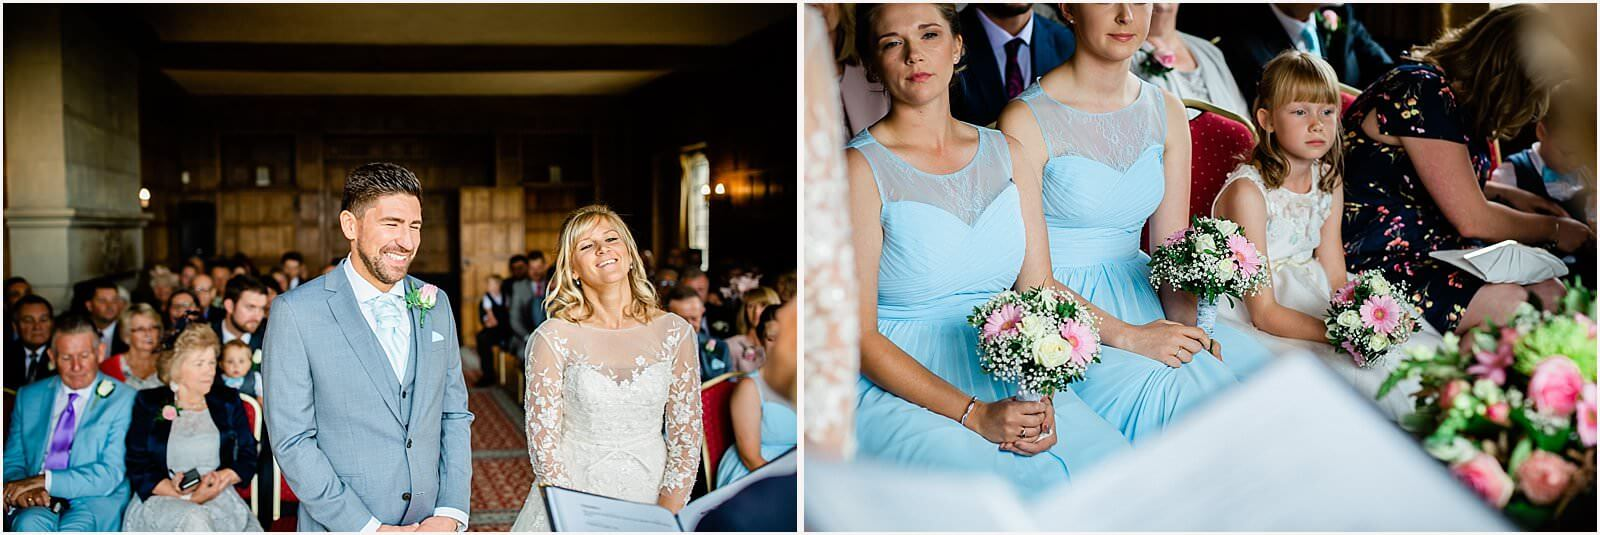 Lympne Castle Wedding | Louise & Rob 31